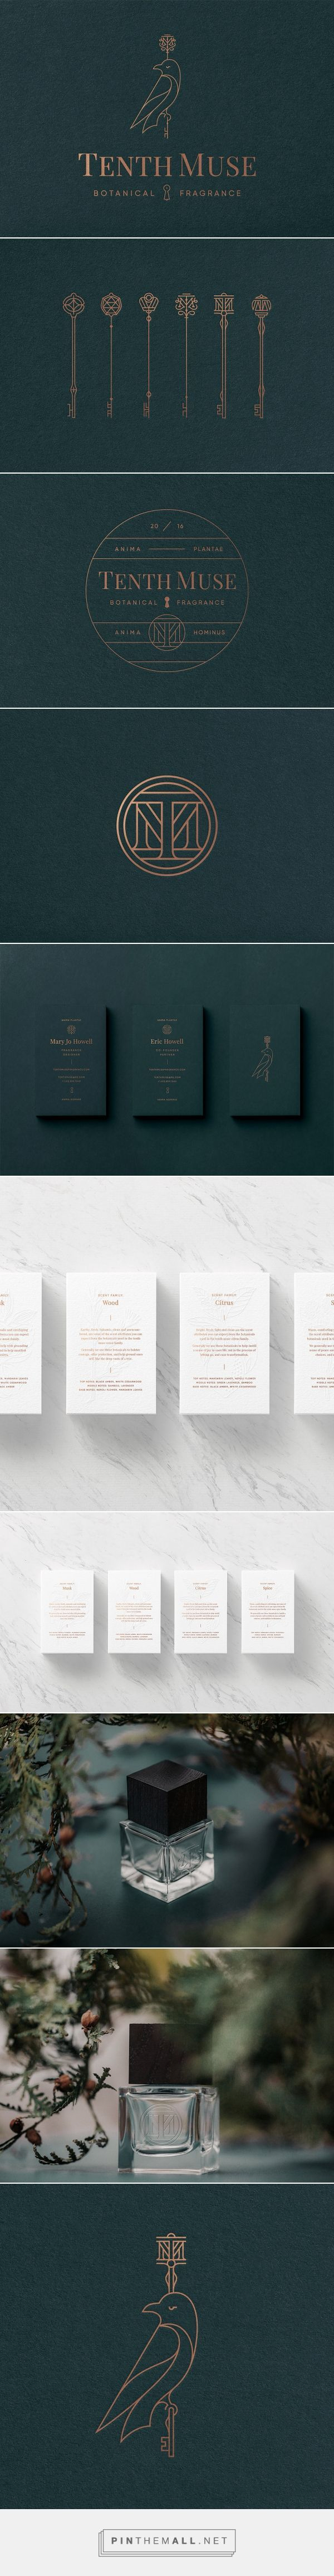 Tenth Muse Brand Identity by Studio MPLS | Inspiration Grid | Design Inspiration . Identity Design . Bird . Branding .